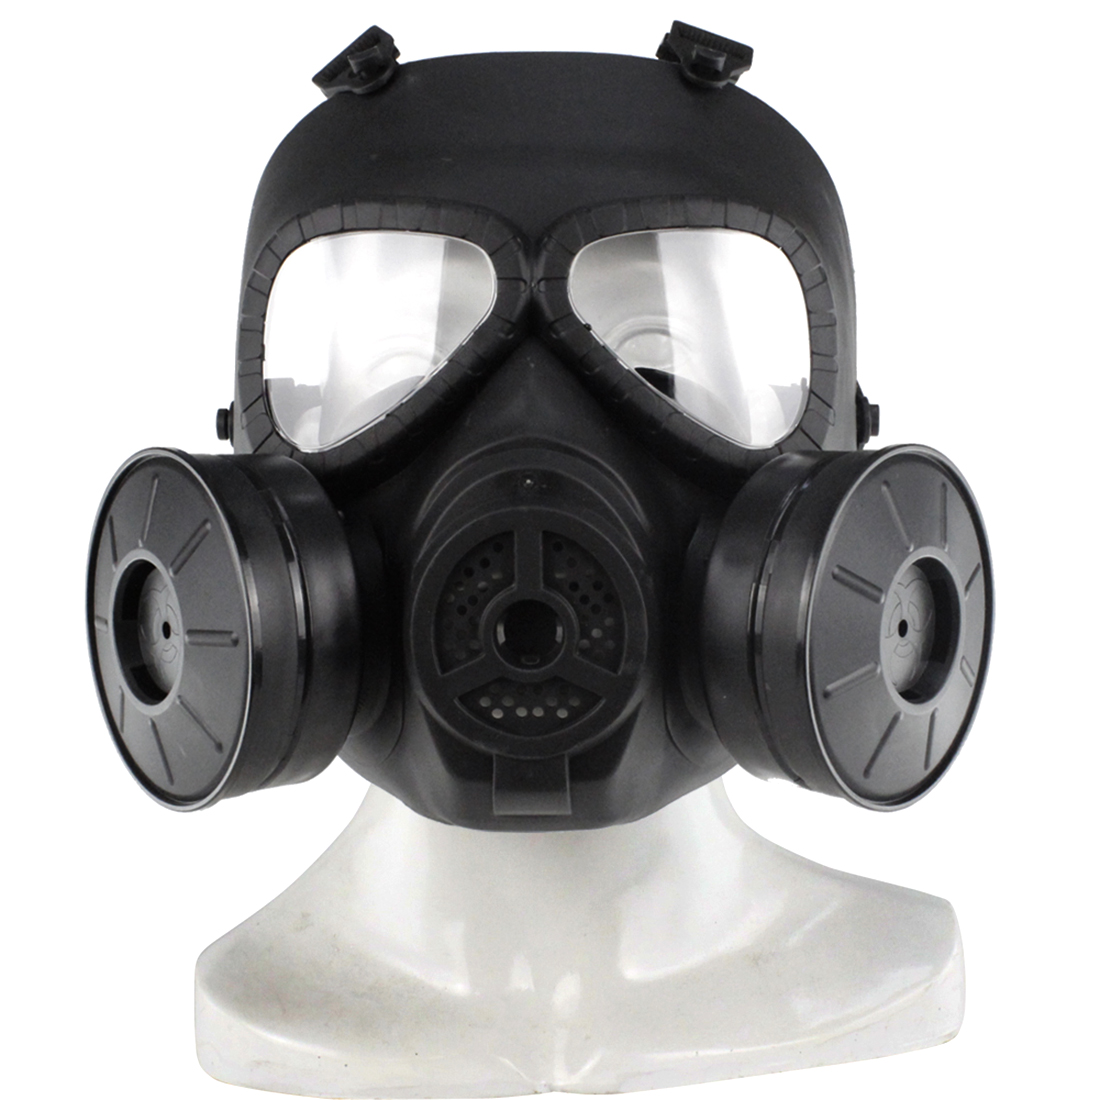 WST Head Mask Full Face Double Canister Electric Ventilative Biochemical Gas Mask